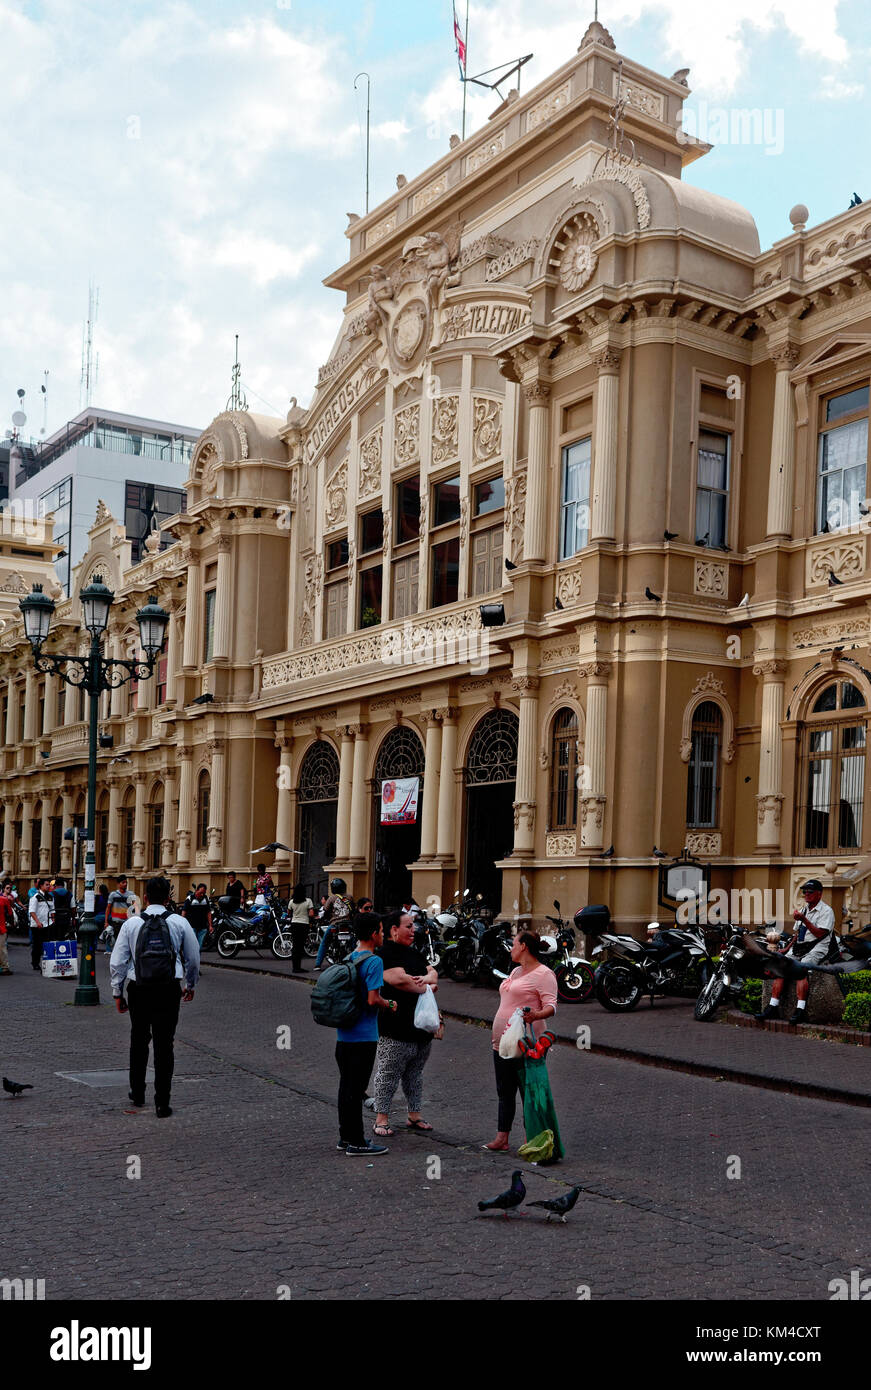 The Grand Post Office and Telegraph building in San Jose, Costa Rica - Stock Image